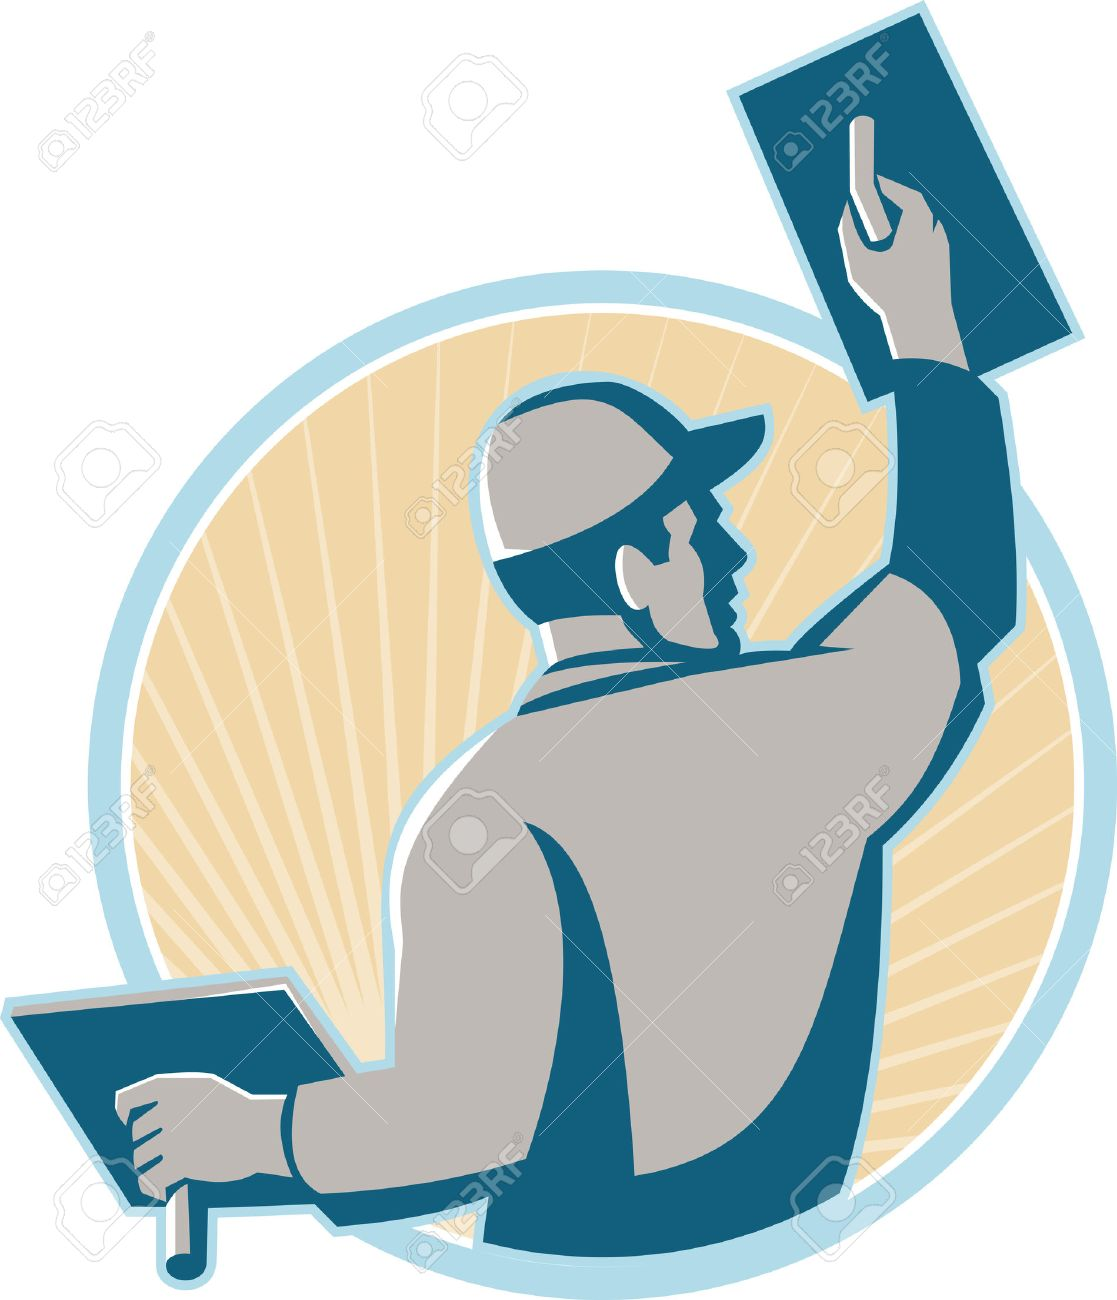 Illustration of a plasterer construction mason worker with trowel at work set inside a circle with sunburst in the background done in retro style. - 37095303